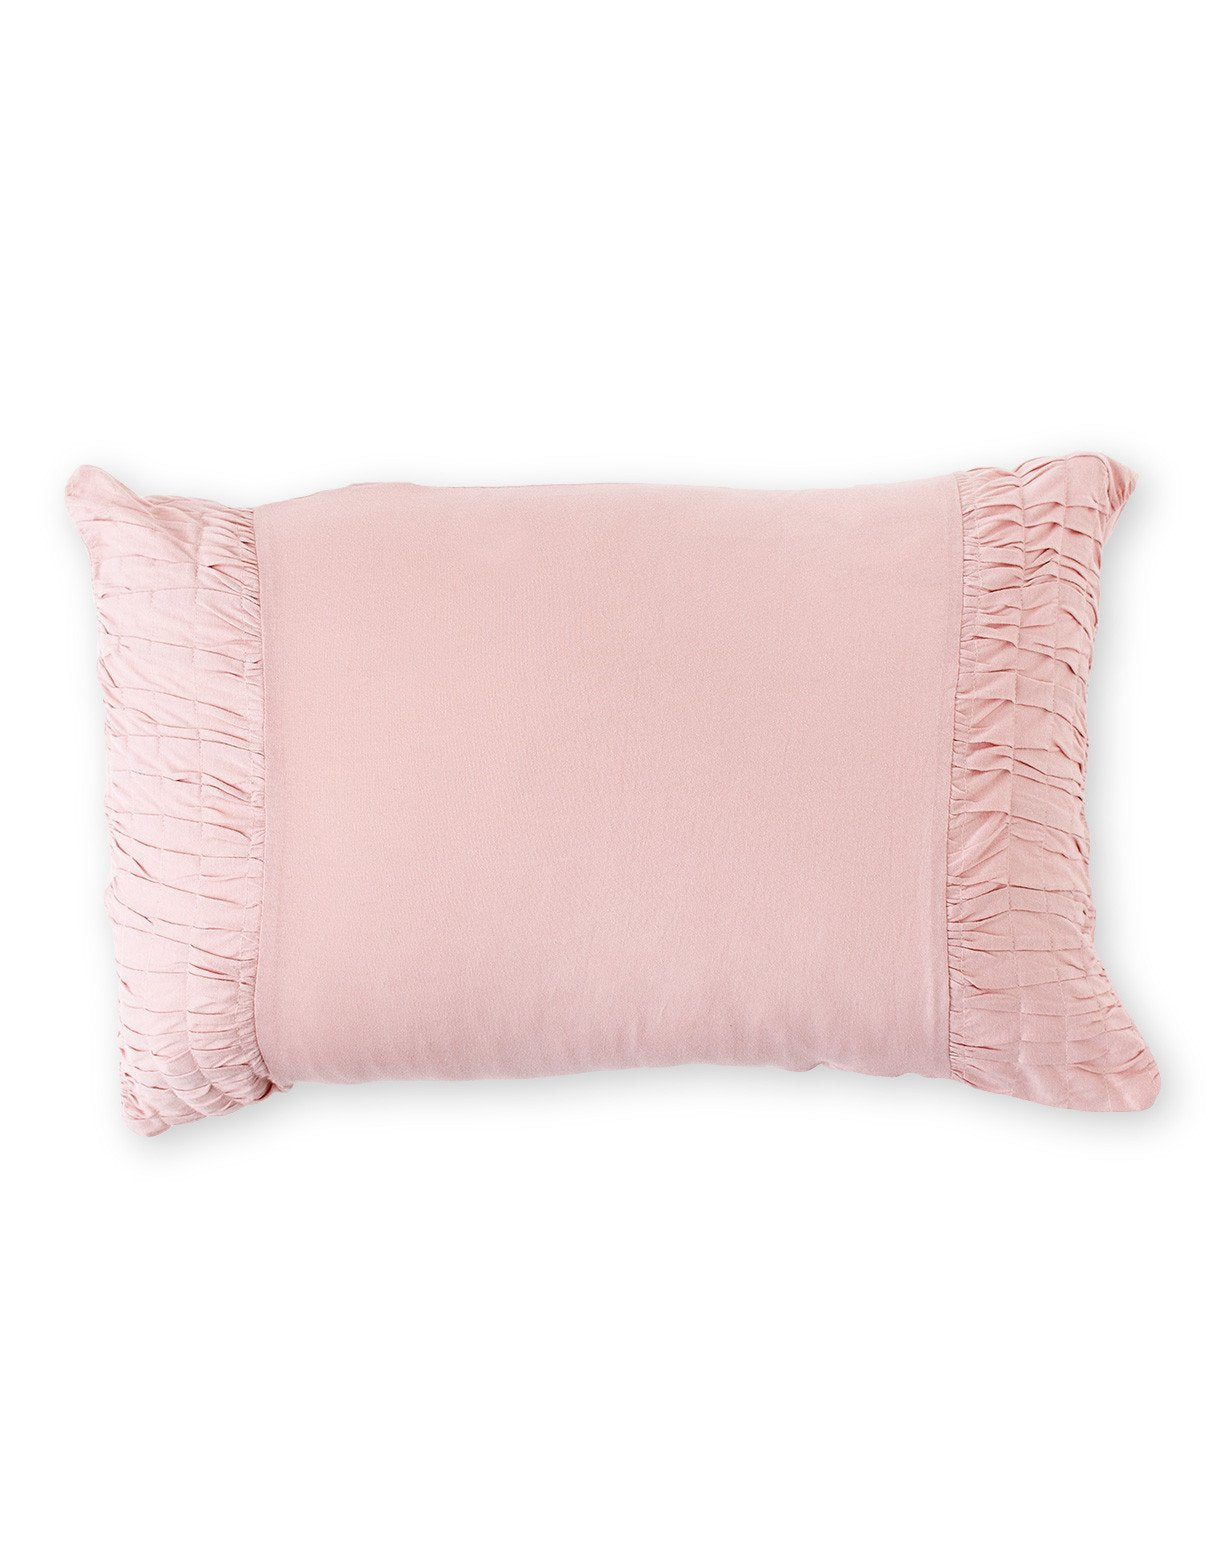 Rosette Pillowcase || Tuscan Pink